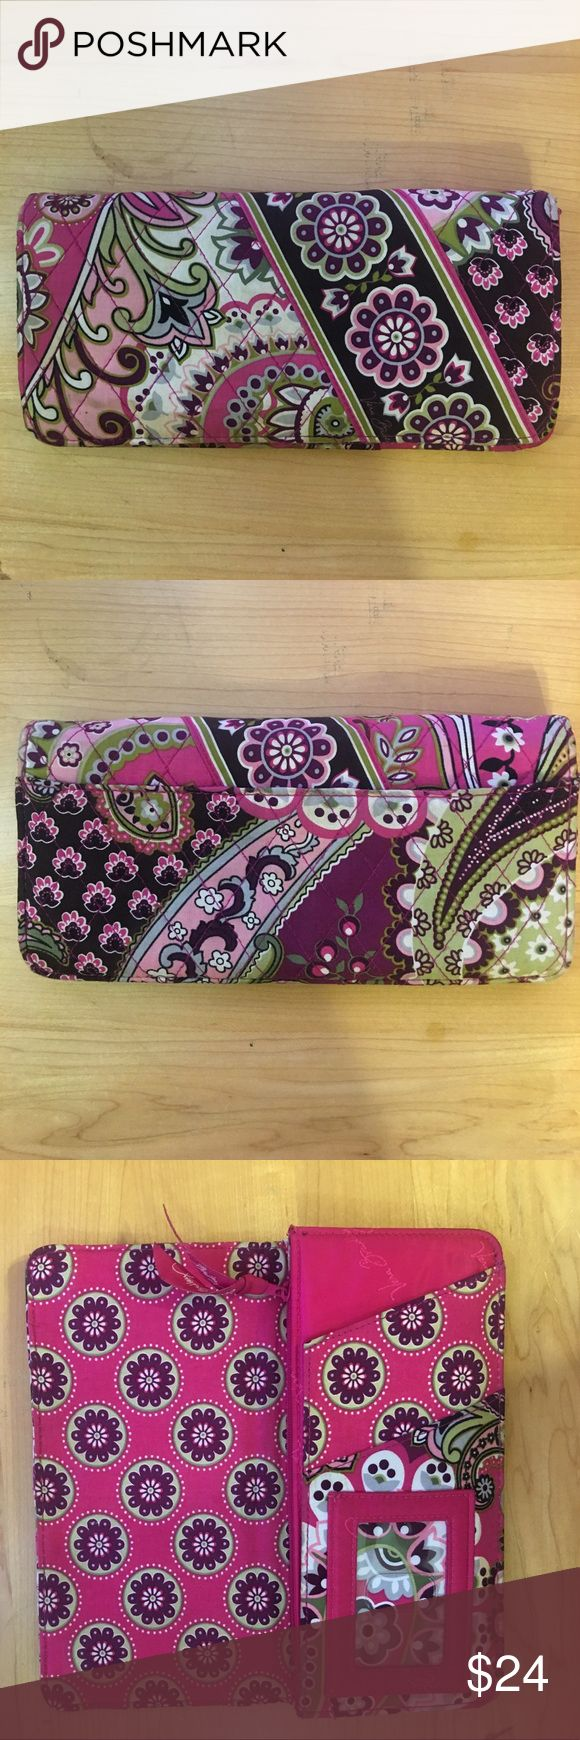 "Vera Bradley TRIFOLD WALLET Very Berry Paisley Don't let its slim silhouette fool you. Inside this timeless trifold design there's everything you need (and want) in a wallet: 11 card slots, three bill pockets and an ID window. vera bradley pattern 063 wallet very berry paisley 	•	Slim trifold design 	•	Hidden magnetic closure 	•	Inside, 11 card slots, three long bill pockets, ID window and photo window 	•	Zippered pocket on back for coins 	•	Measures 8 ¼"" W x 4"" H x ¾"" D 	•	MSRP: $42 	•	Like…"